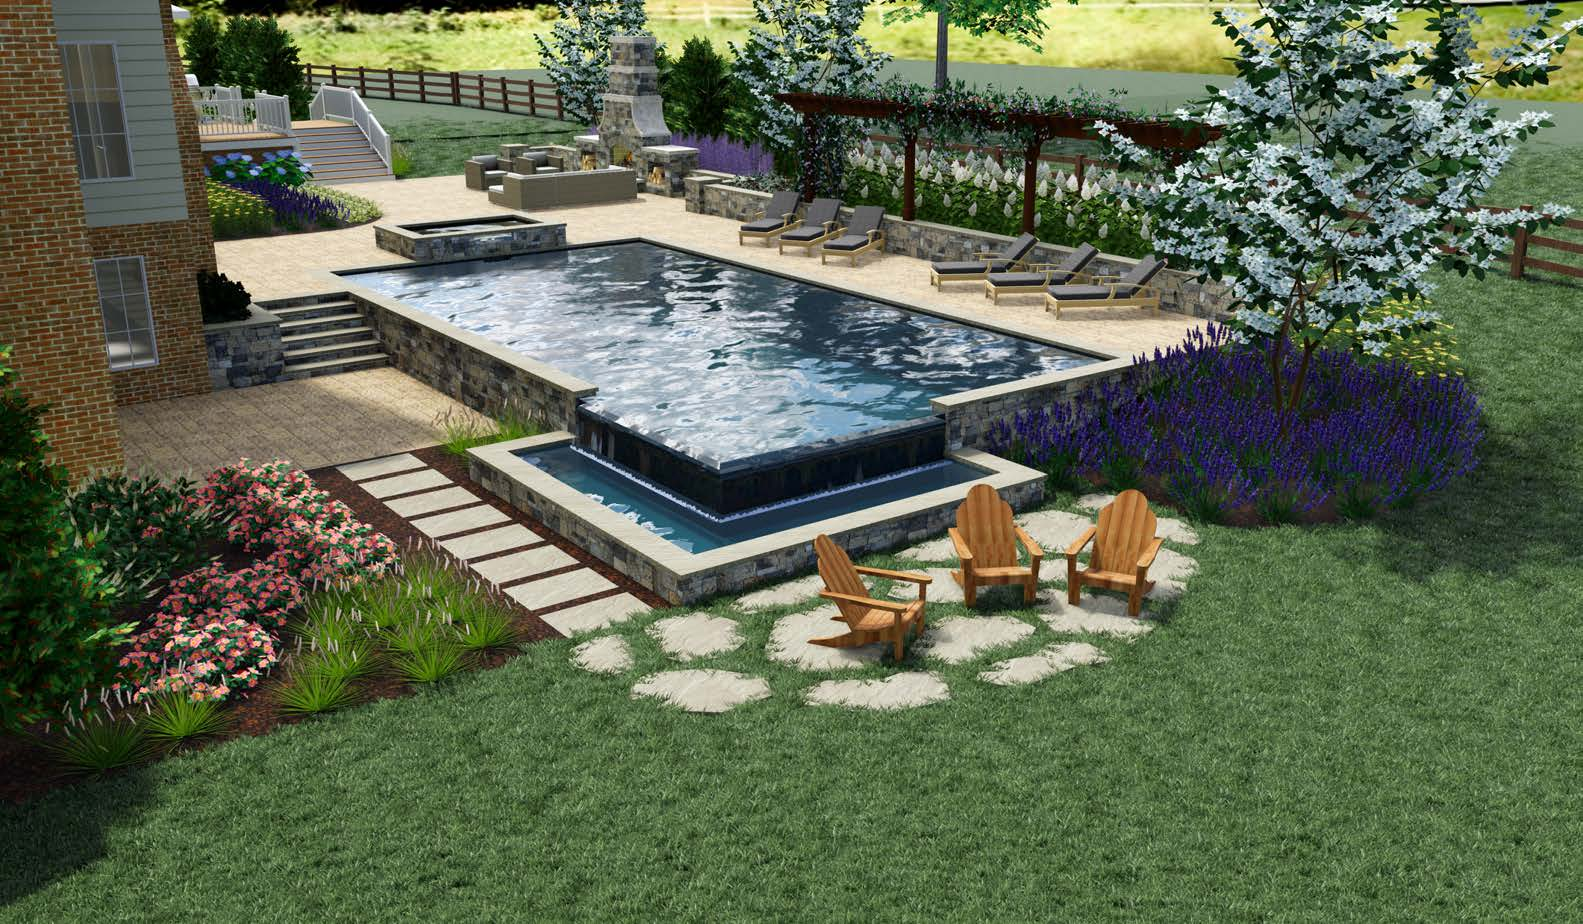 How Much Does an Infinity Pool Cost? Considering the Price and Possibility in Northern Virginia